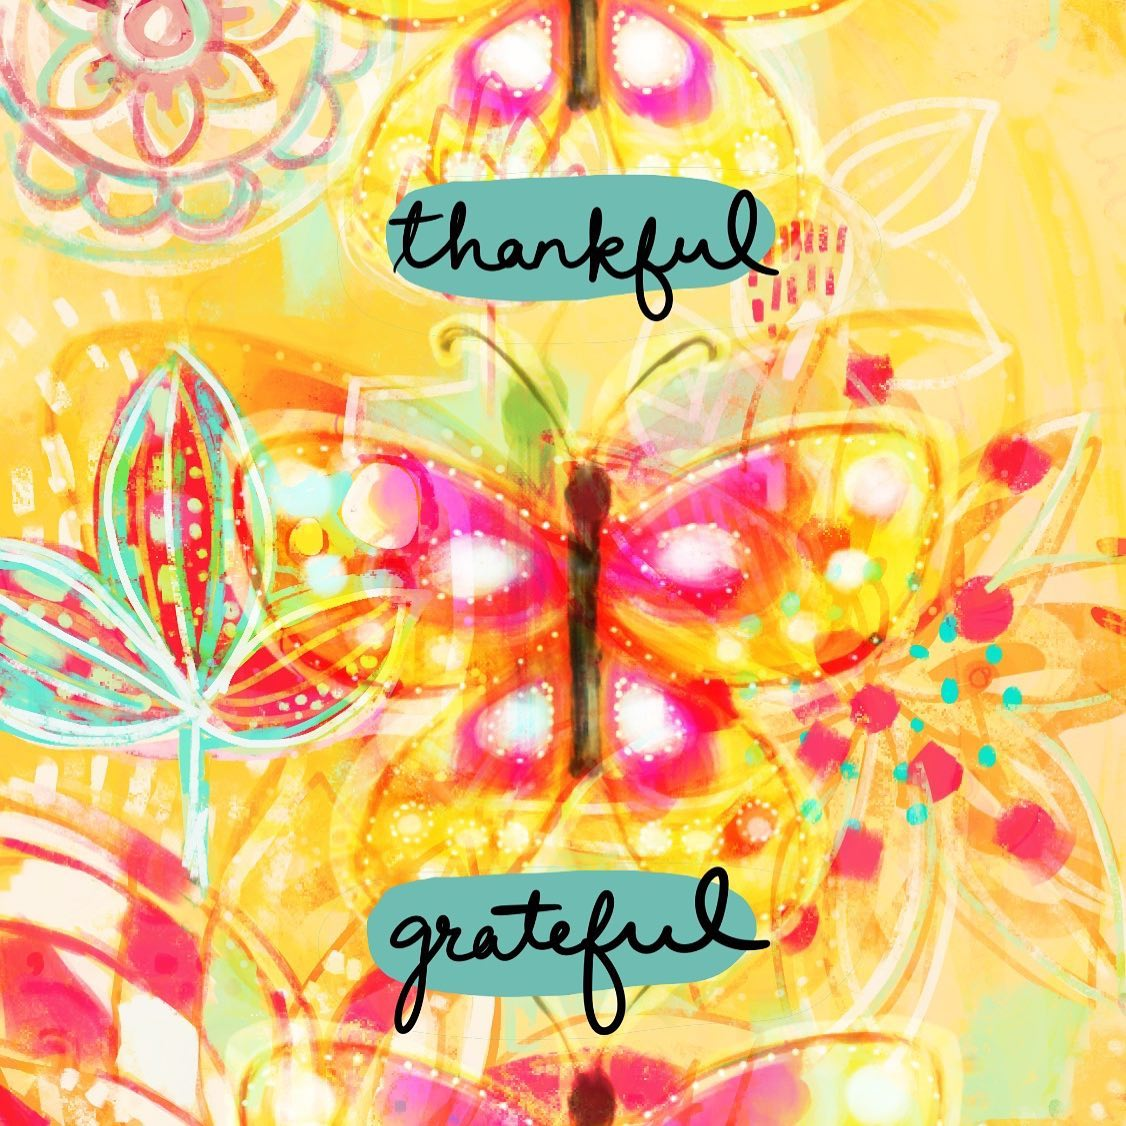 Today is a good day to be thankful! Happy Thanksgiving!!  Download wallpaper for your phone: https://www.cheenakaul.com/downloads